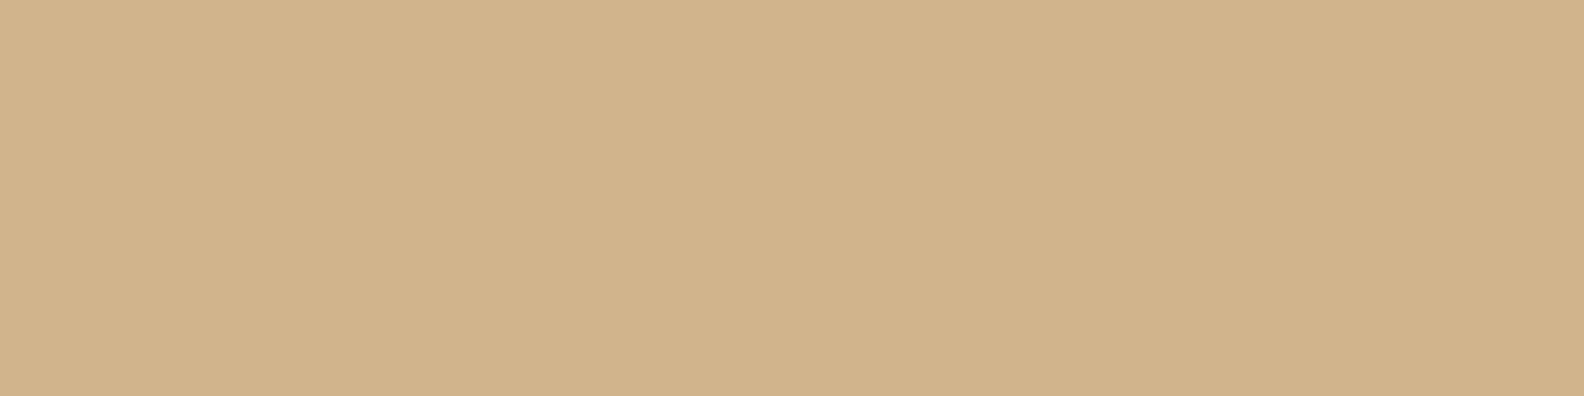 1584x396 Tan Solid Color Background